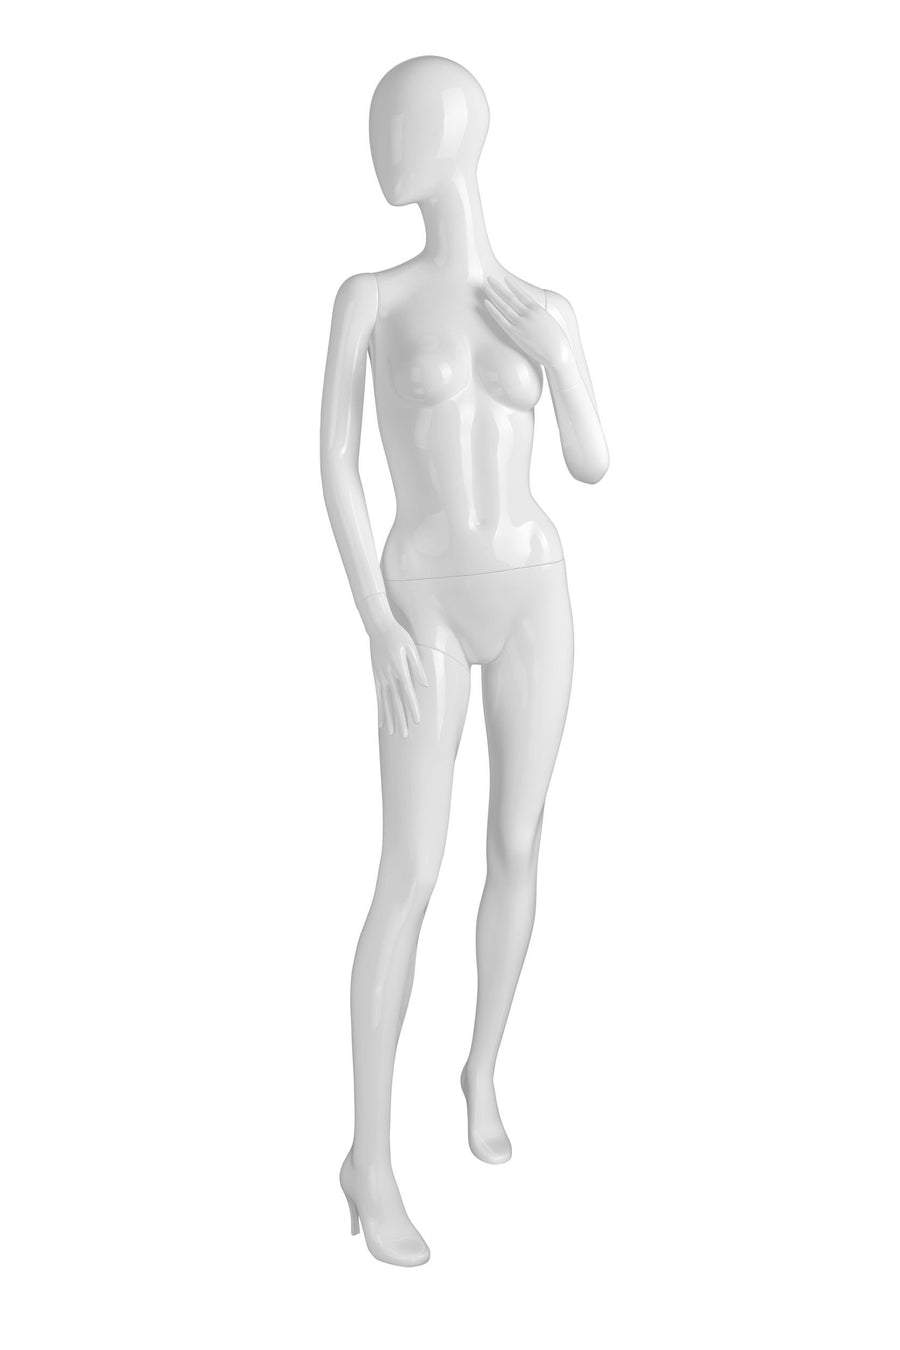 pure white female mannequin with blank face and left arm bent to touch chest and right leg stepping forward